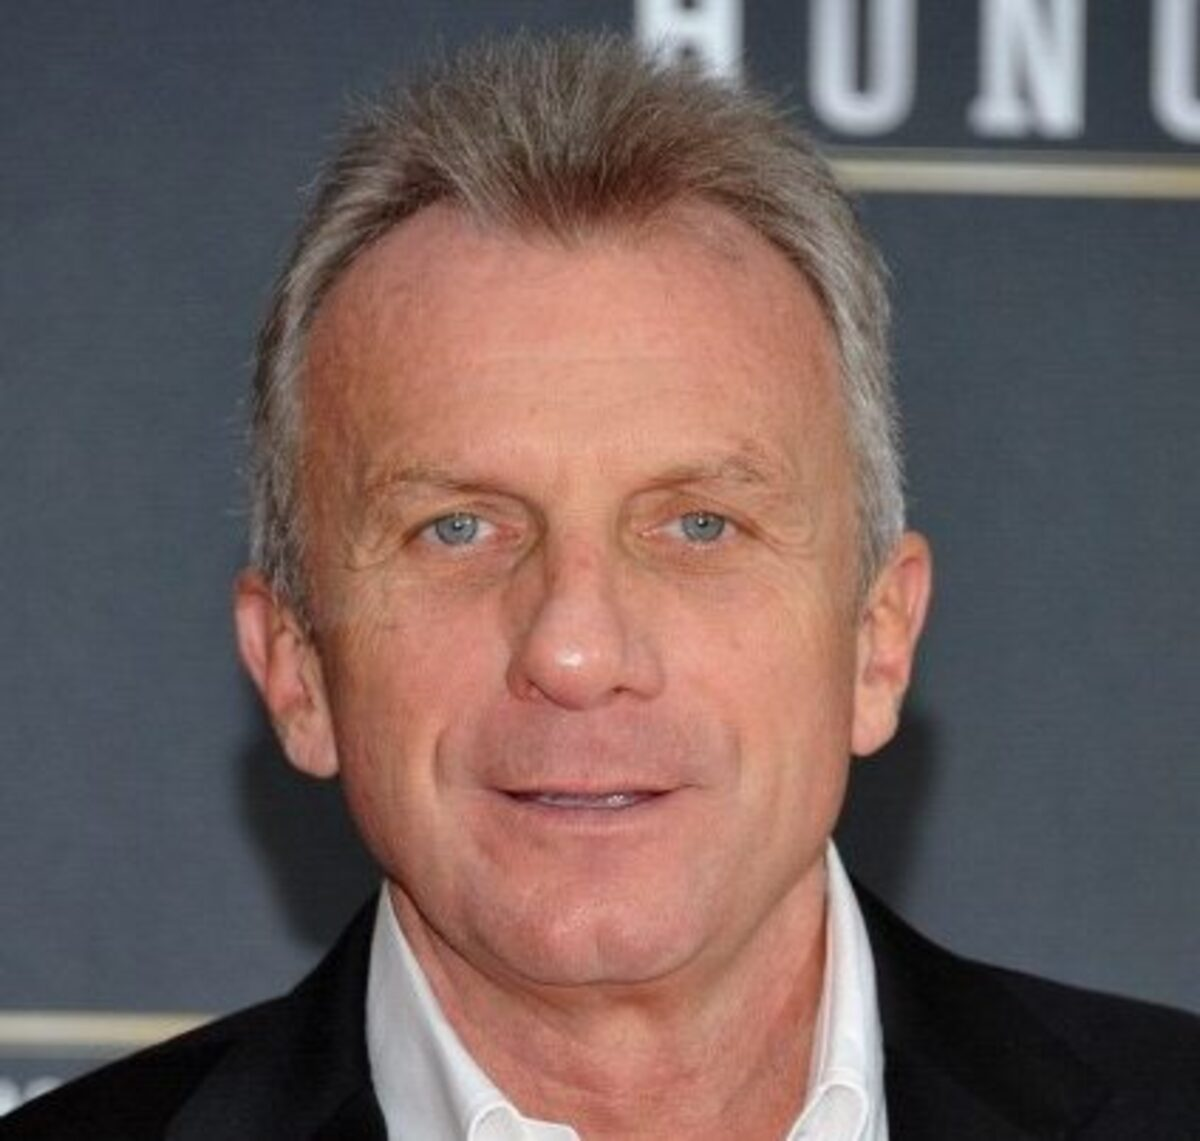 Joe Montana Net Worth Celebrity Net Worth